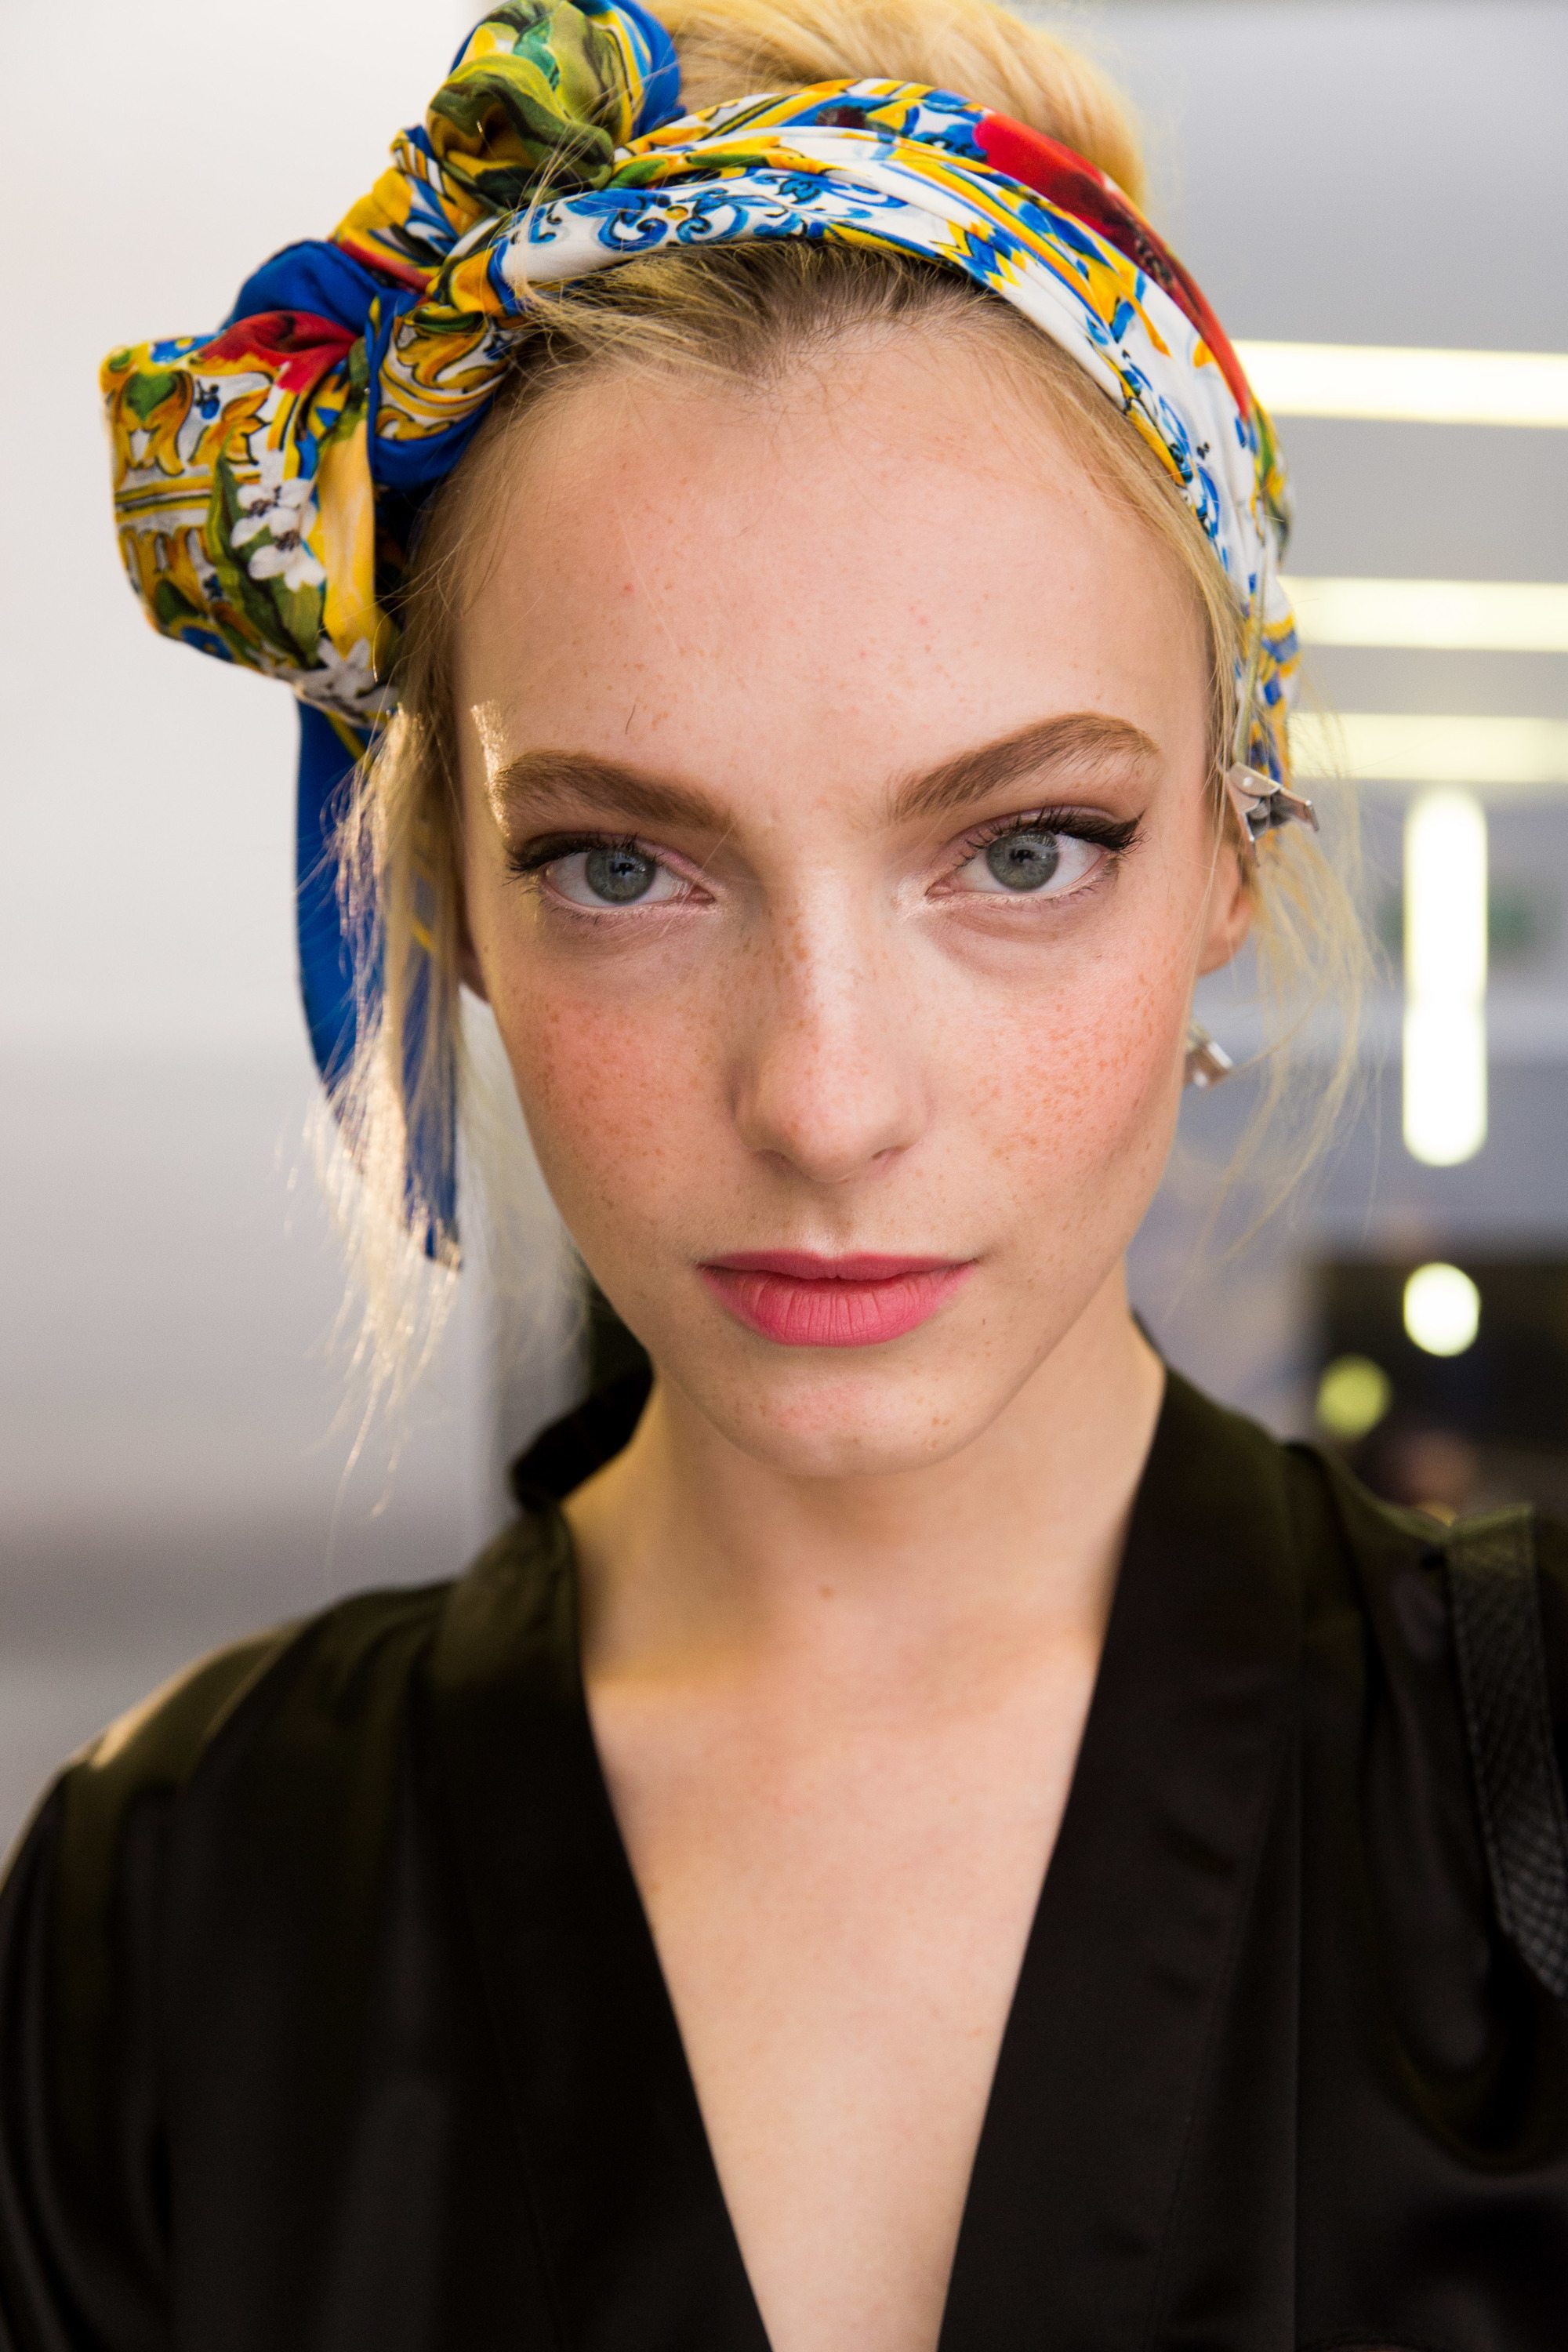 easy vintage hairstyles: backstage shot of model with a vintage messy updo with a printed scarf, wearing all black and posing